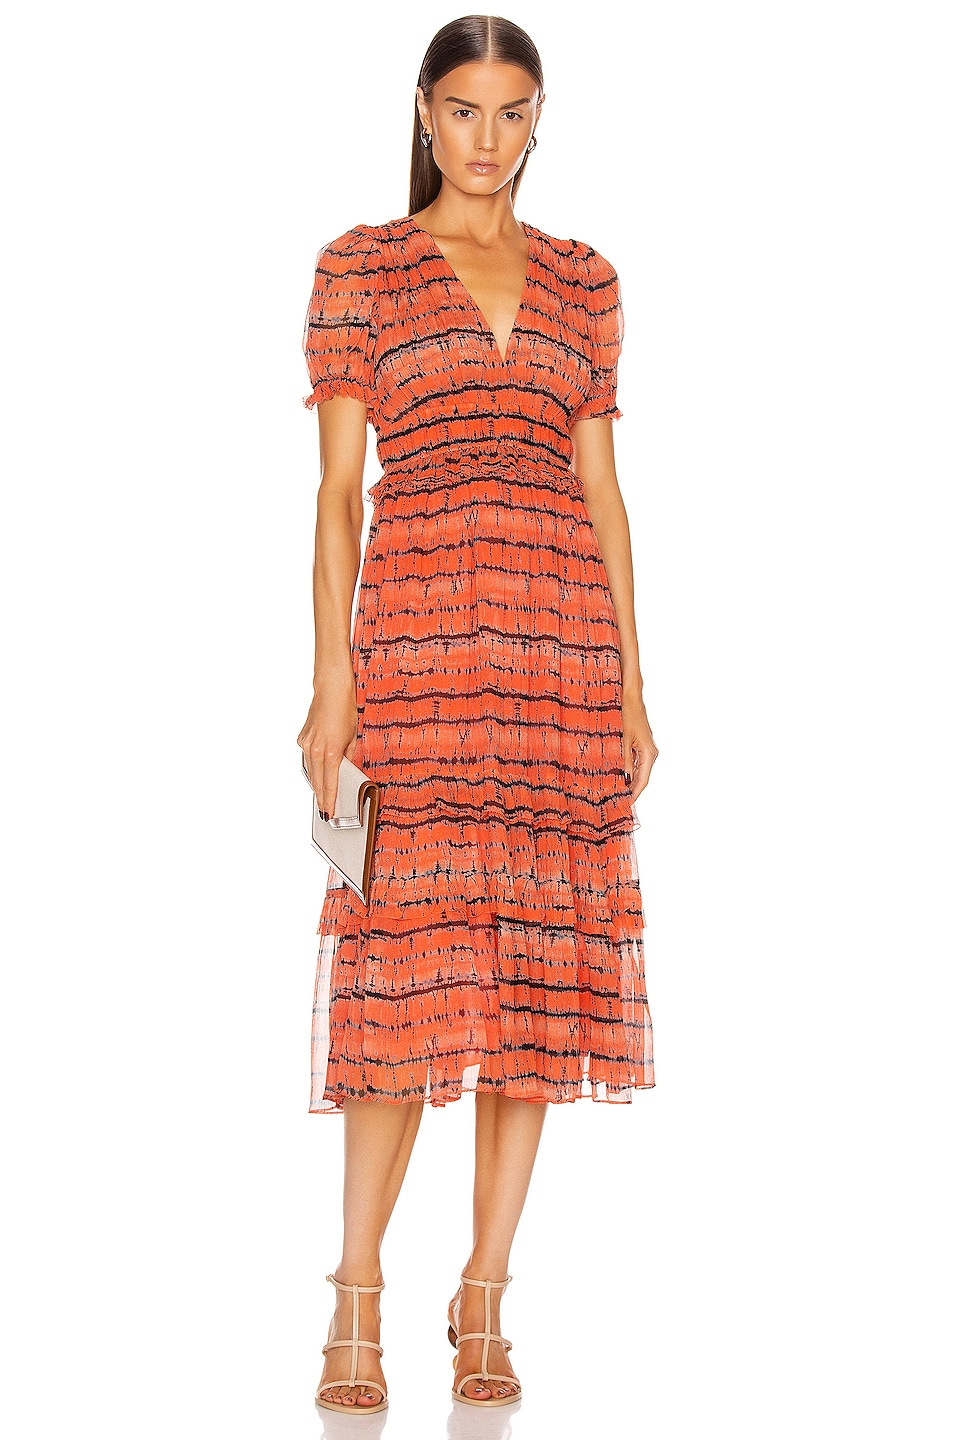 Image 1 of Ulla Johnson Elodie Dress in Chili Tie Dye